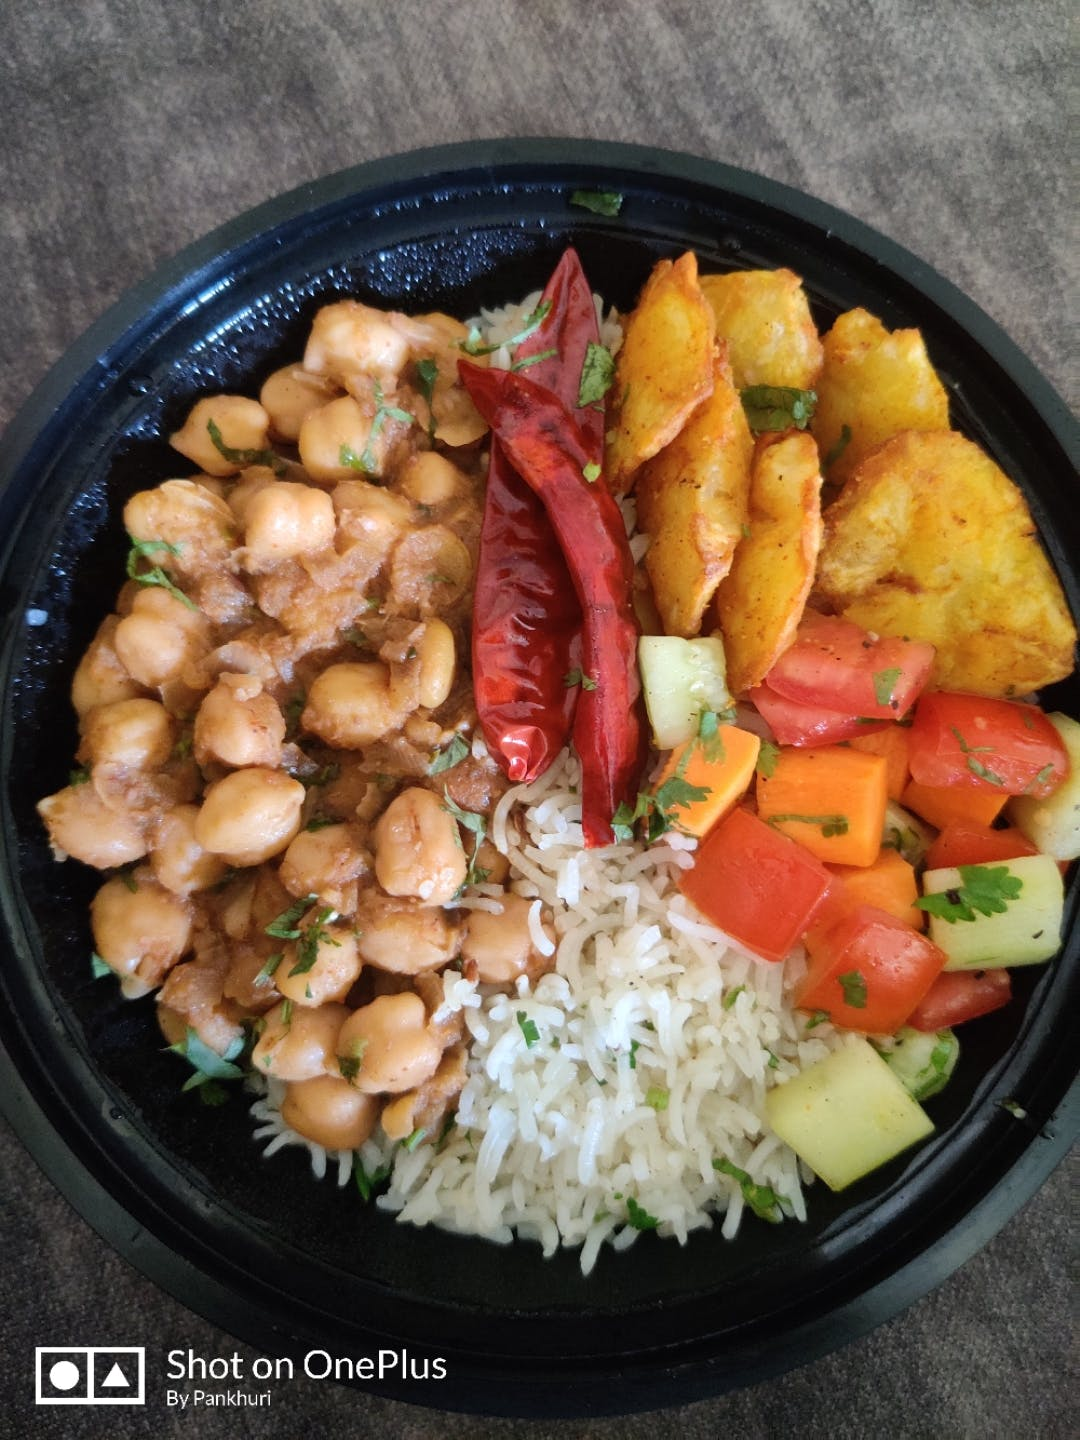 Dish,Food,Cuisine,Ingredient,Kung pao chicken,Lunch,Produce,Vegetable,Recipe,Staple food